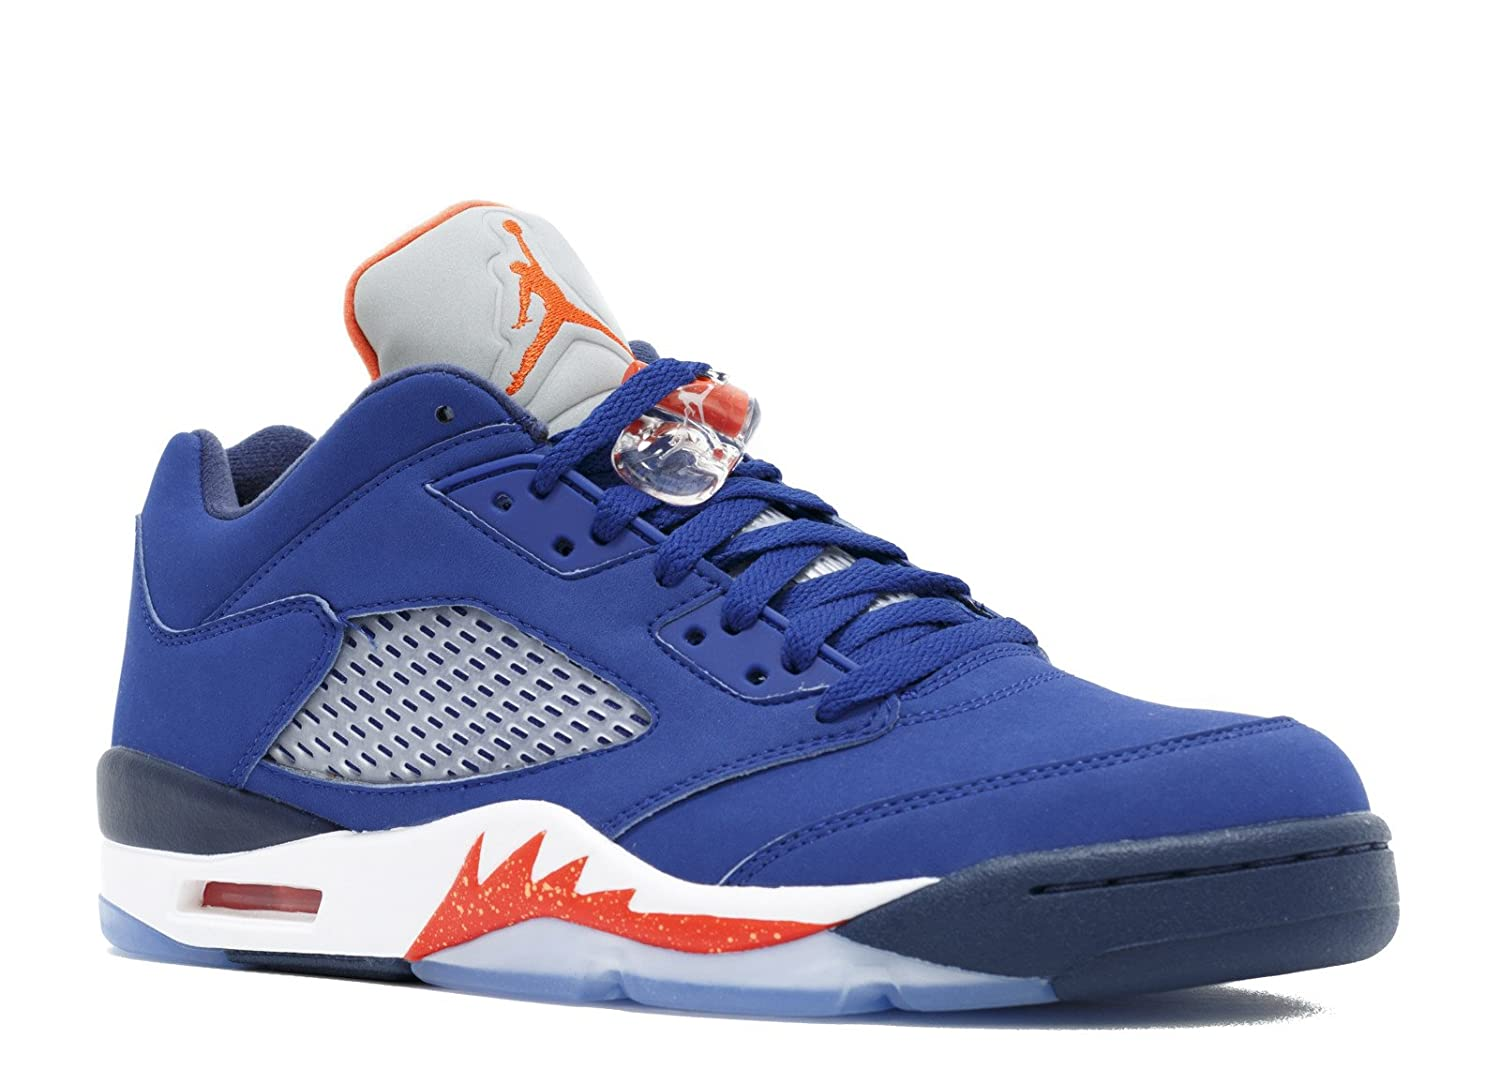 2b0f0ac26f0 Amazon.com | AIR Jordan 5 Retro Low 'Knicks' - 819171-417 | Basketball